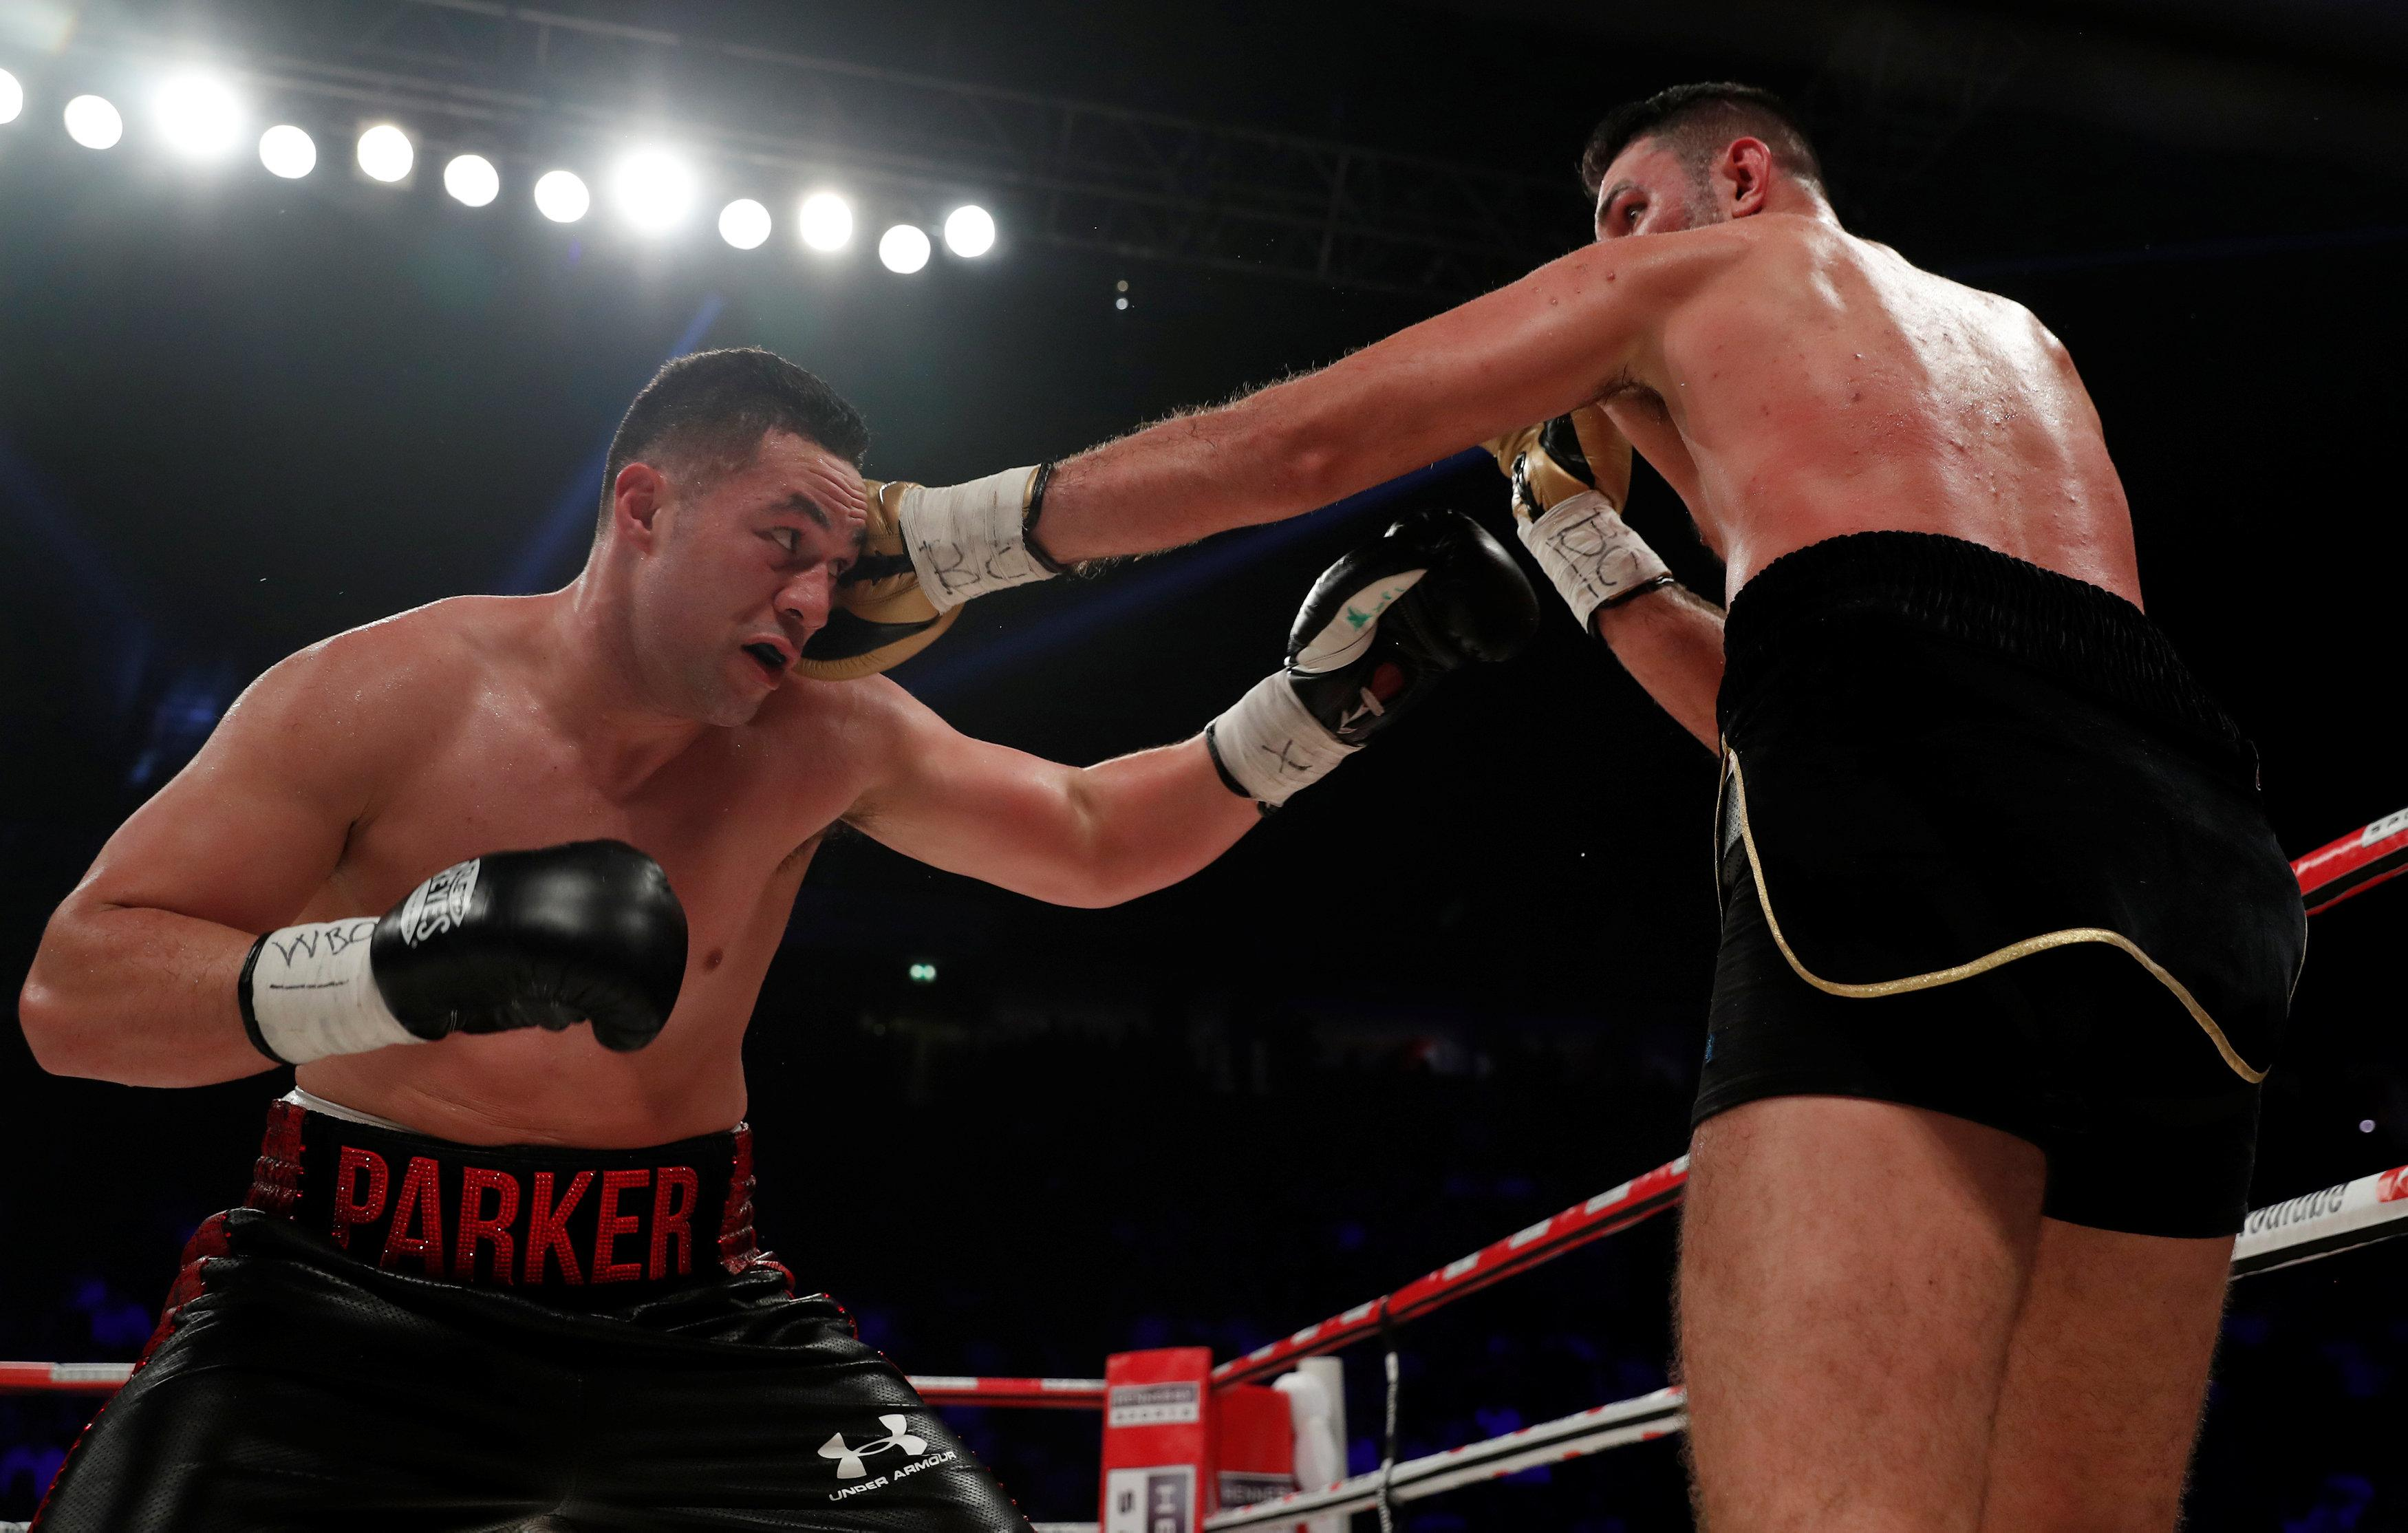 Joseph Parker struggled with elbow injuries during Hughie Fury win